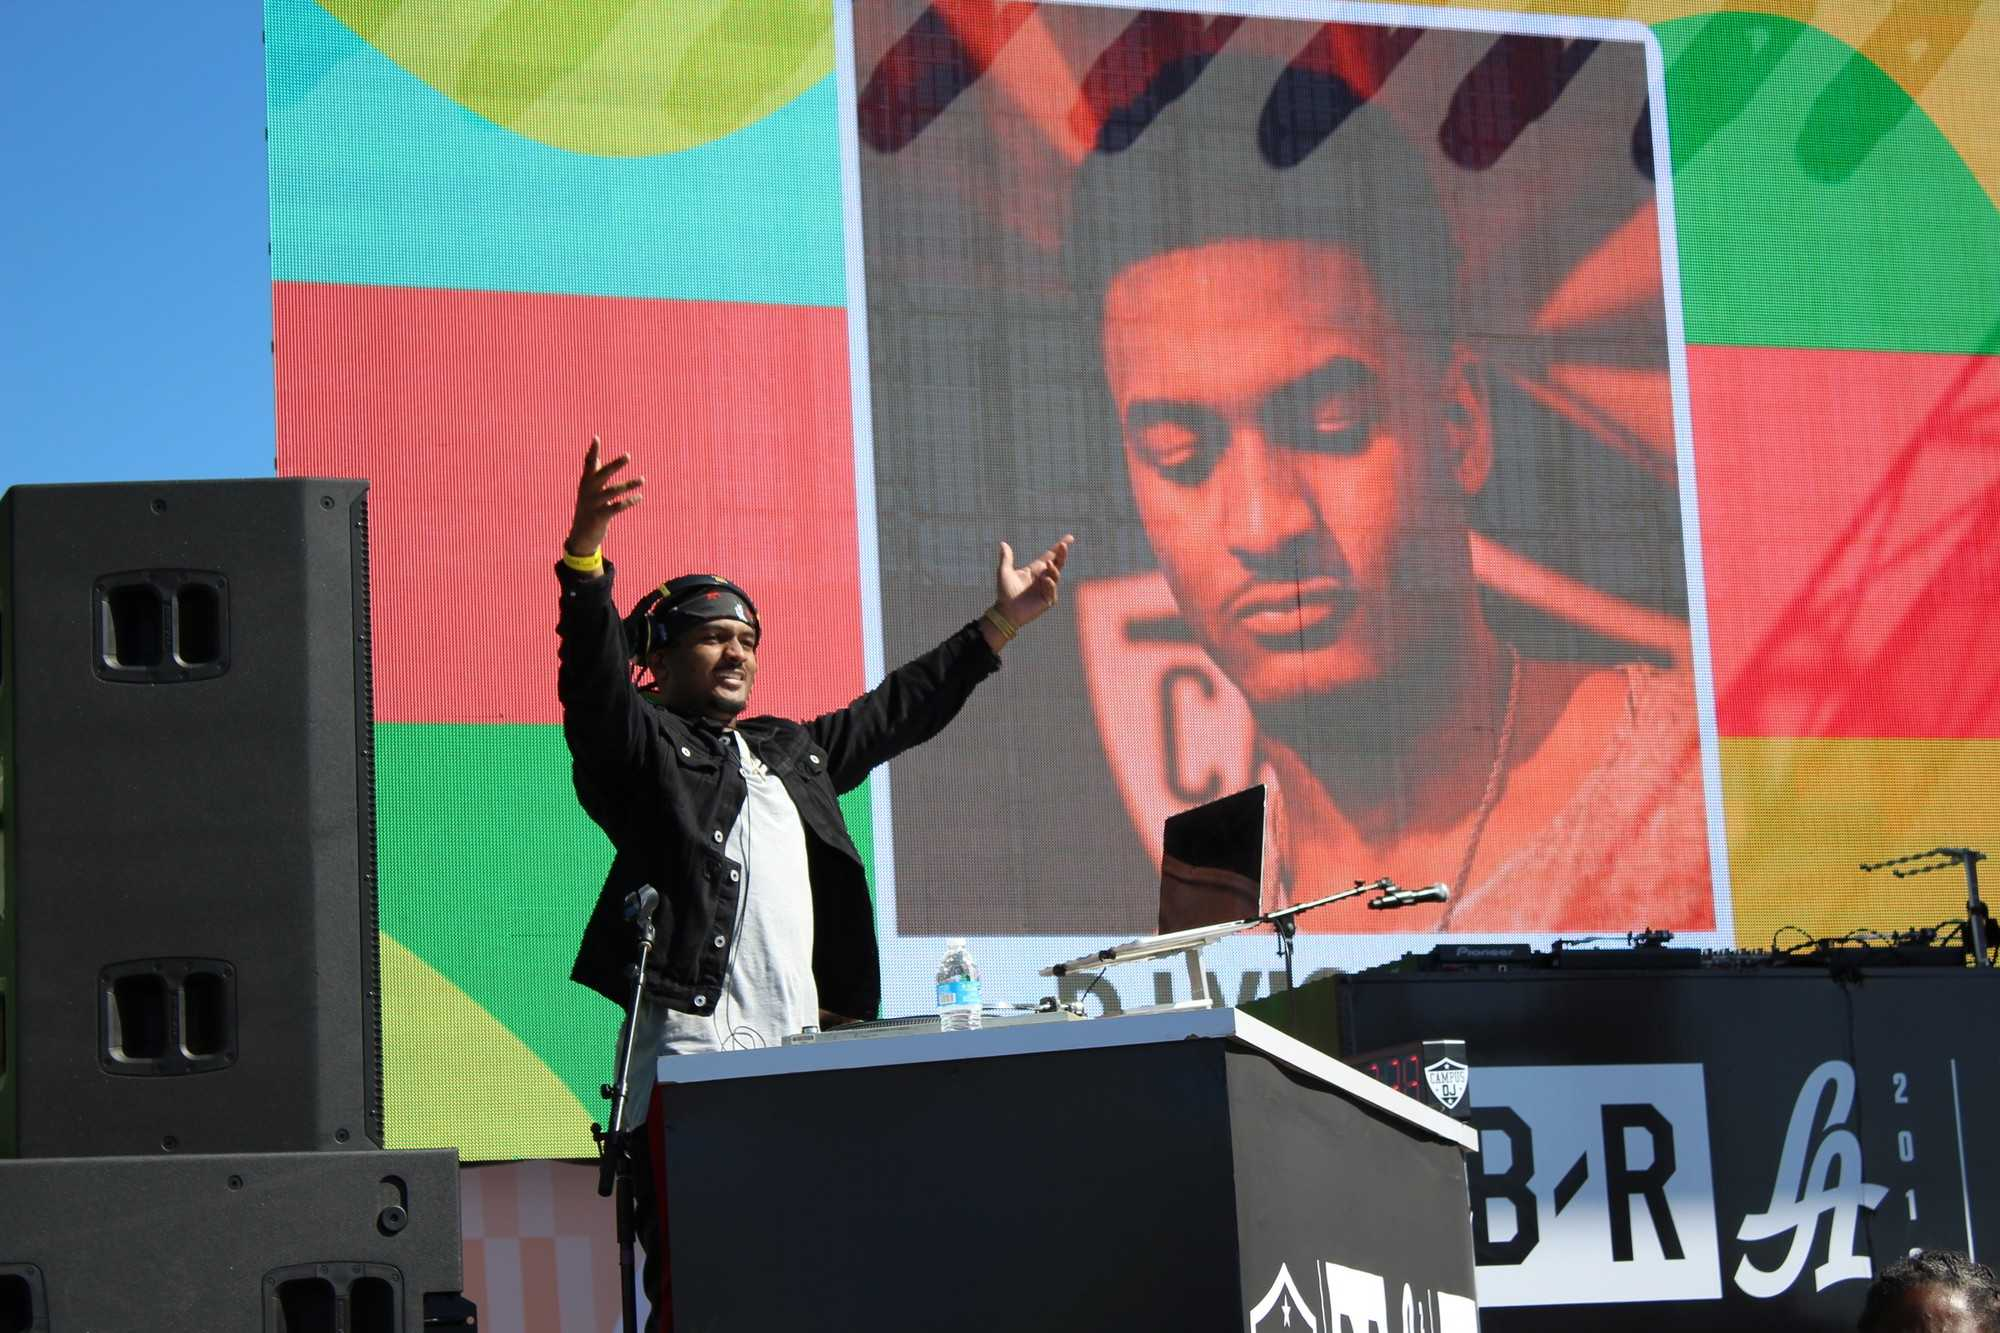 DJ Vicious during his first set on the JBL stage. Photo credit: Lauren Turner Dunn